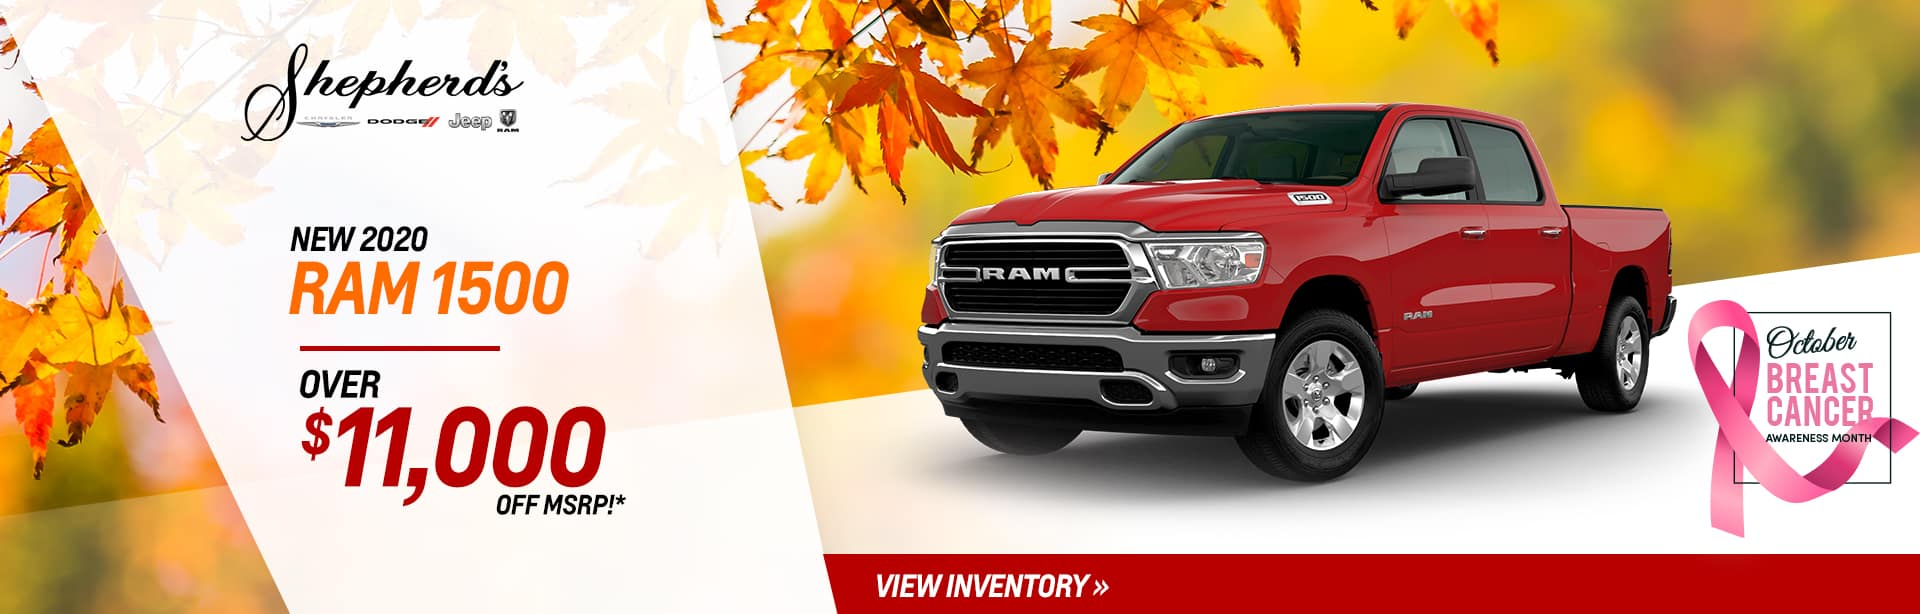 New RAM Truck Inventory near Fort Wayne, Indiana.